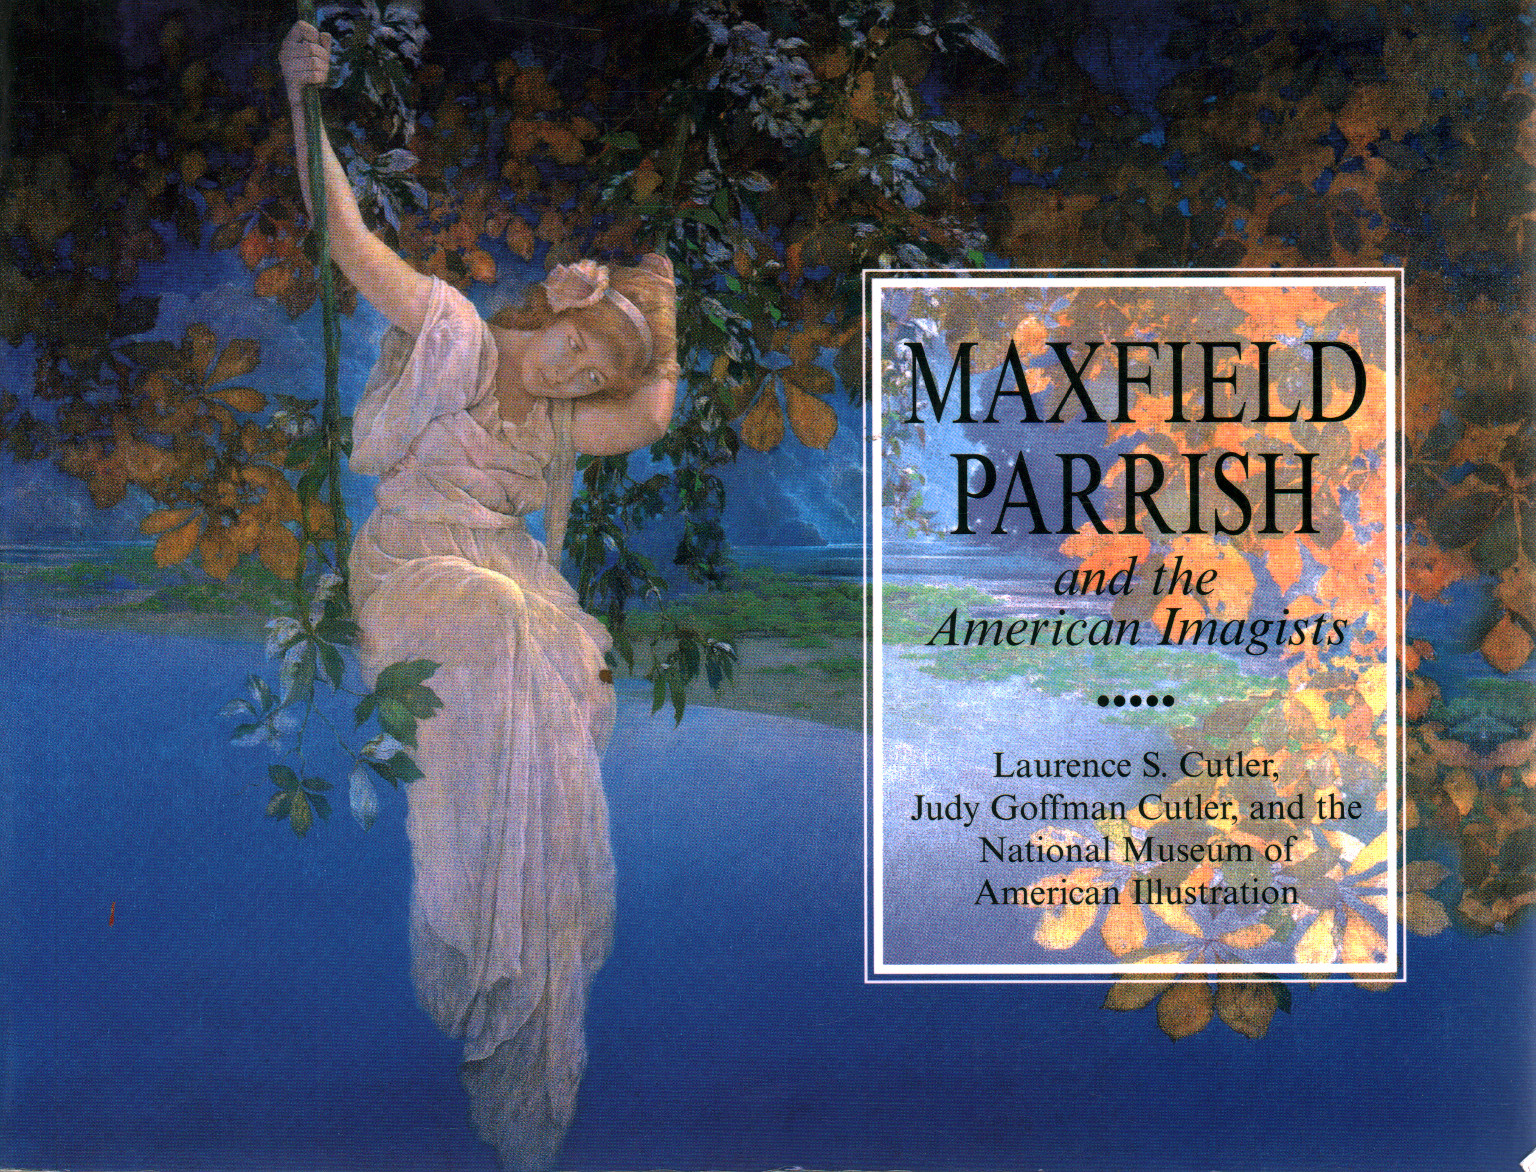 Maxfield Parrish and the American Imagists, s.a.